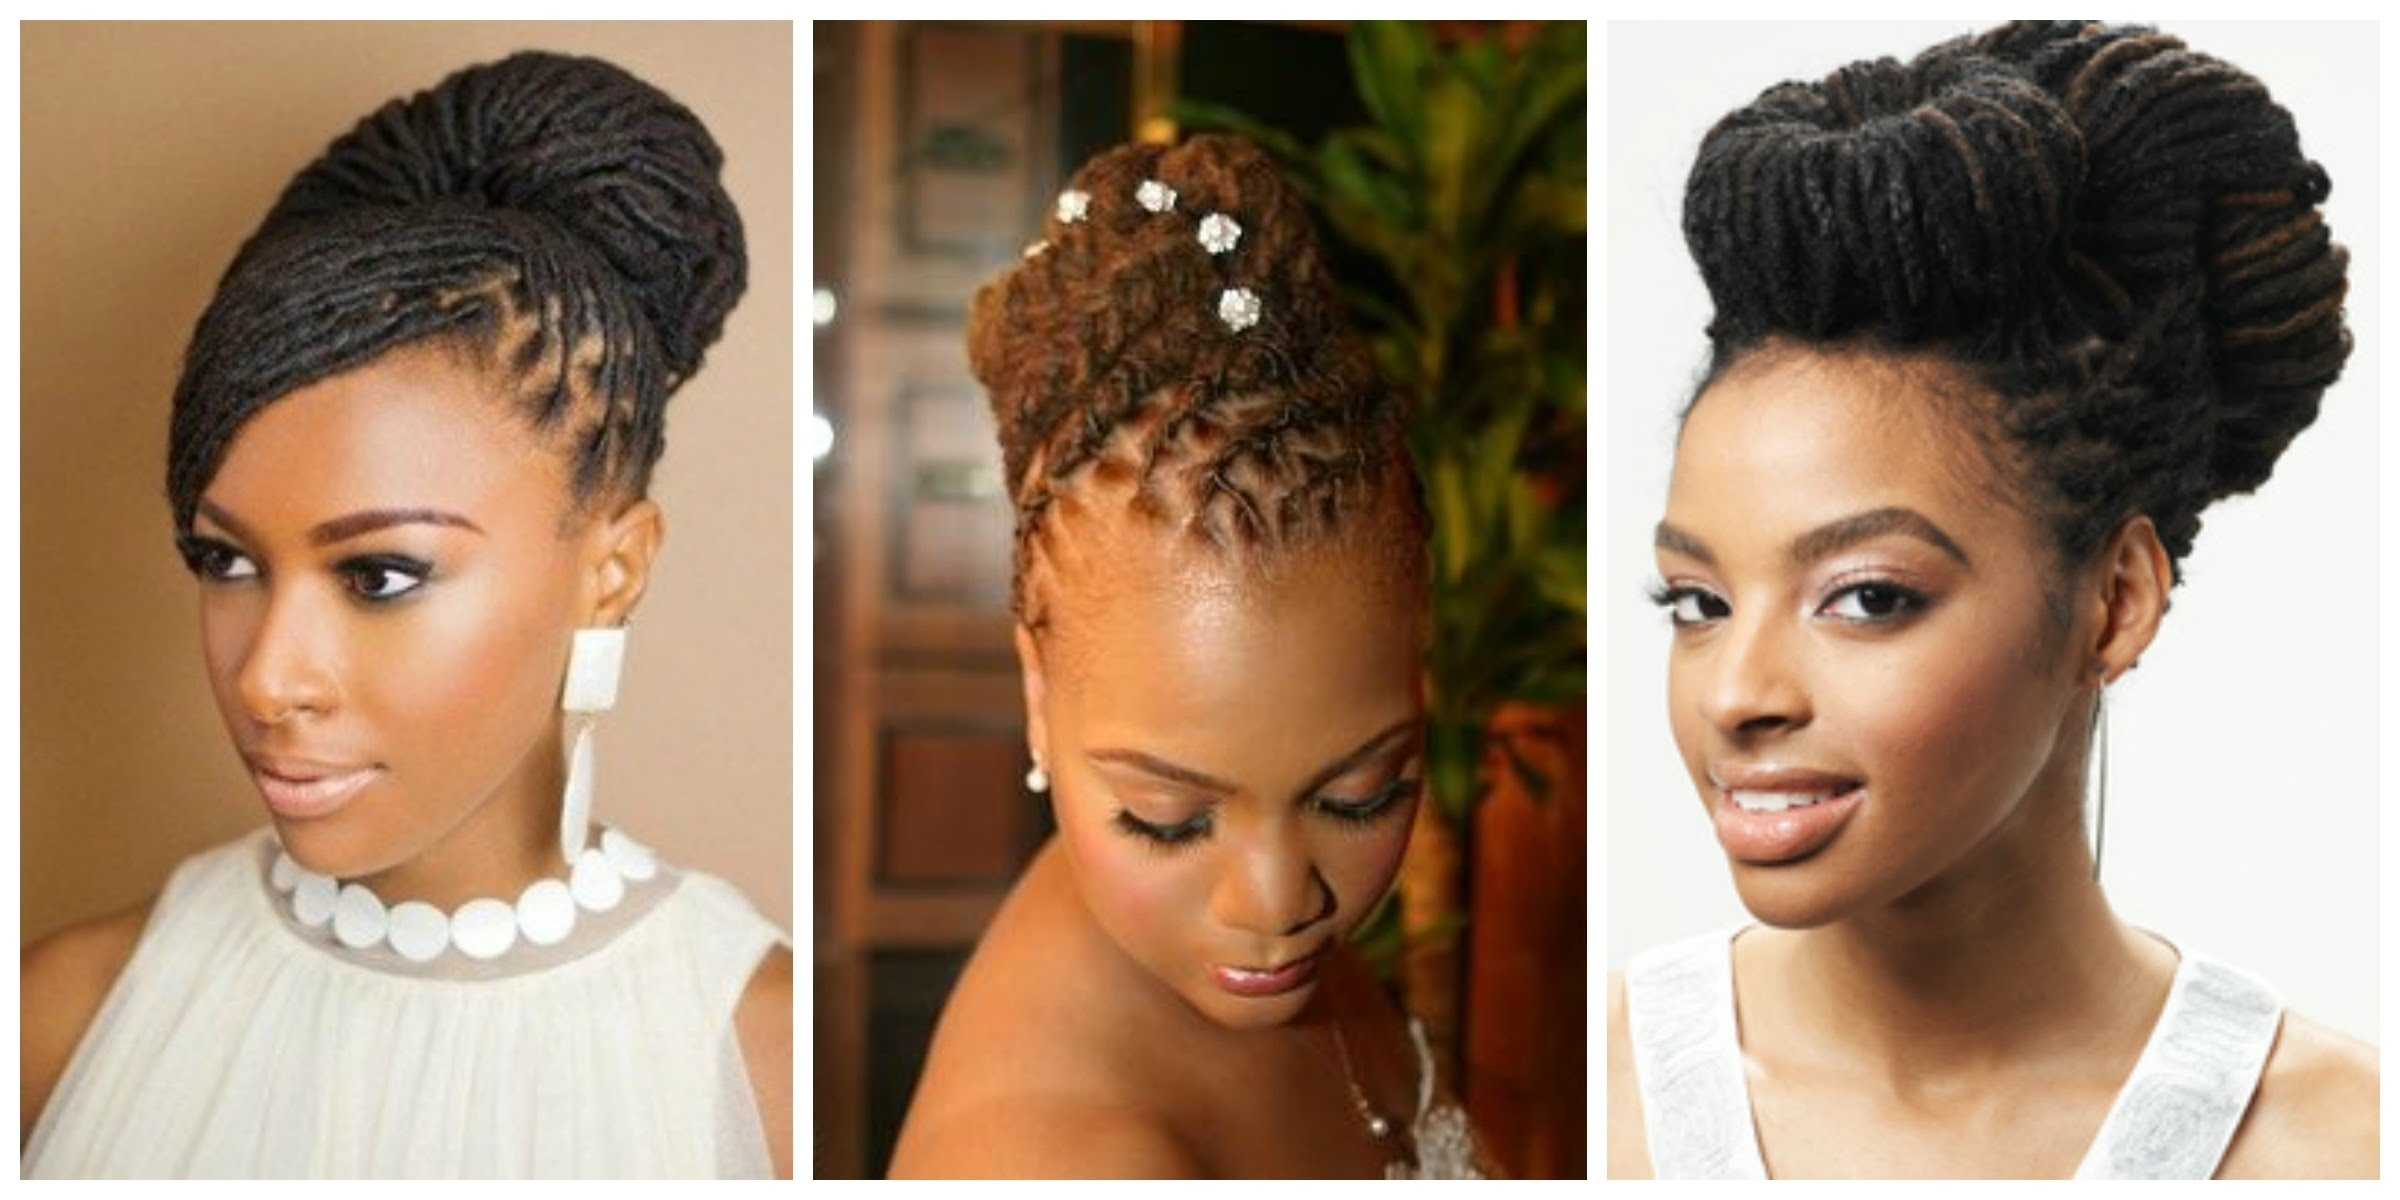 Dreadlocks Updo Hairstyles For Women Loc Updo Hairstyles | Dreadlock Inside Updo Hairstyles For Long Locs (Gallery 8 of 15)